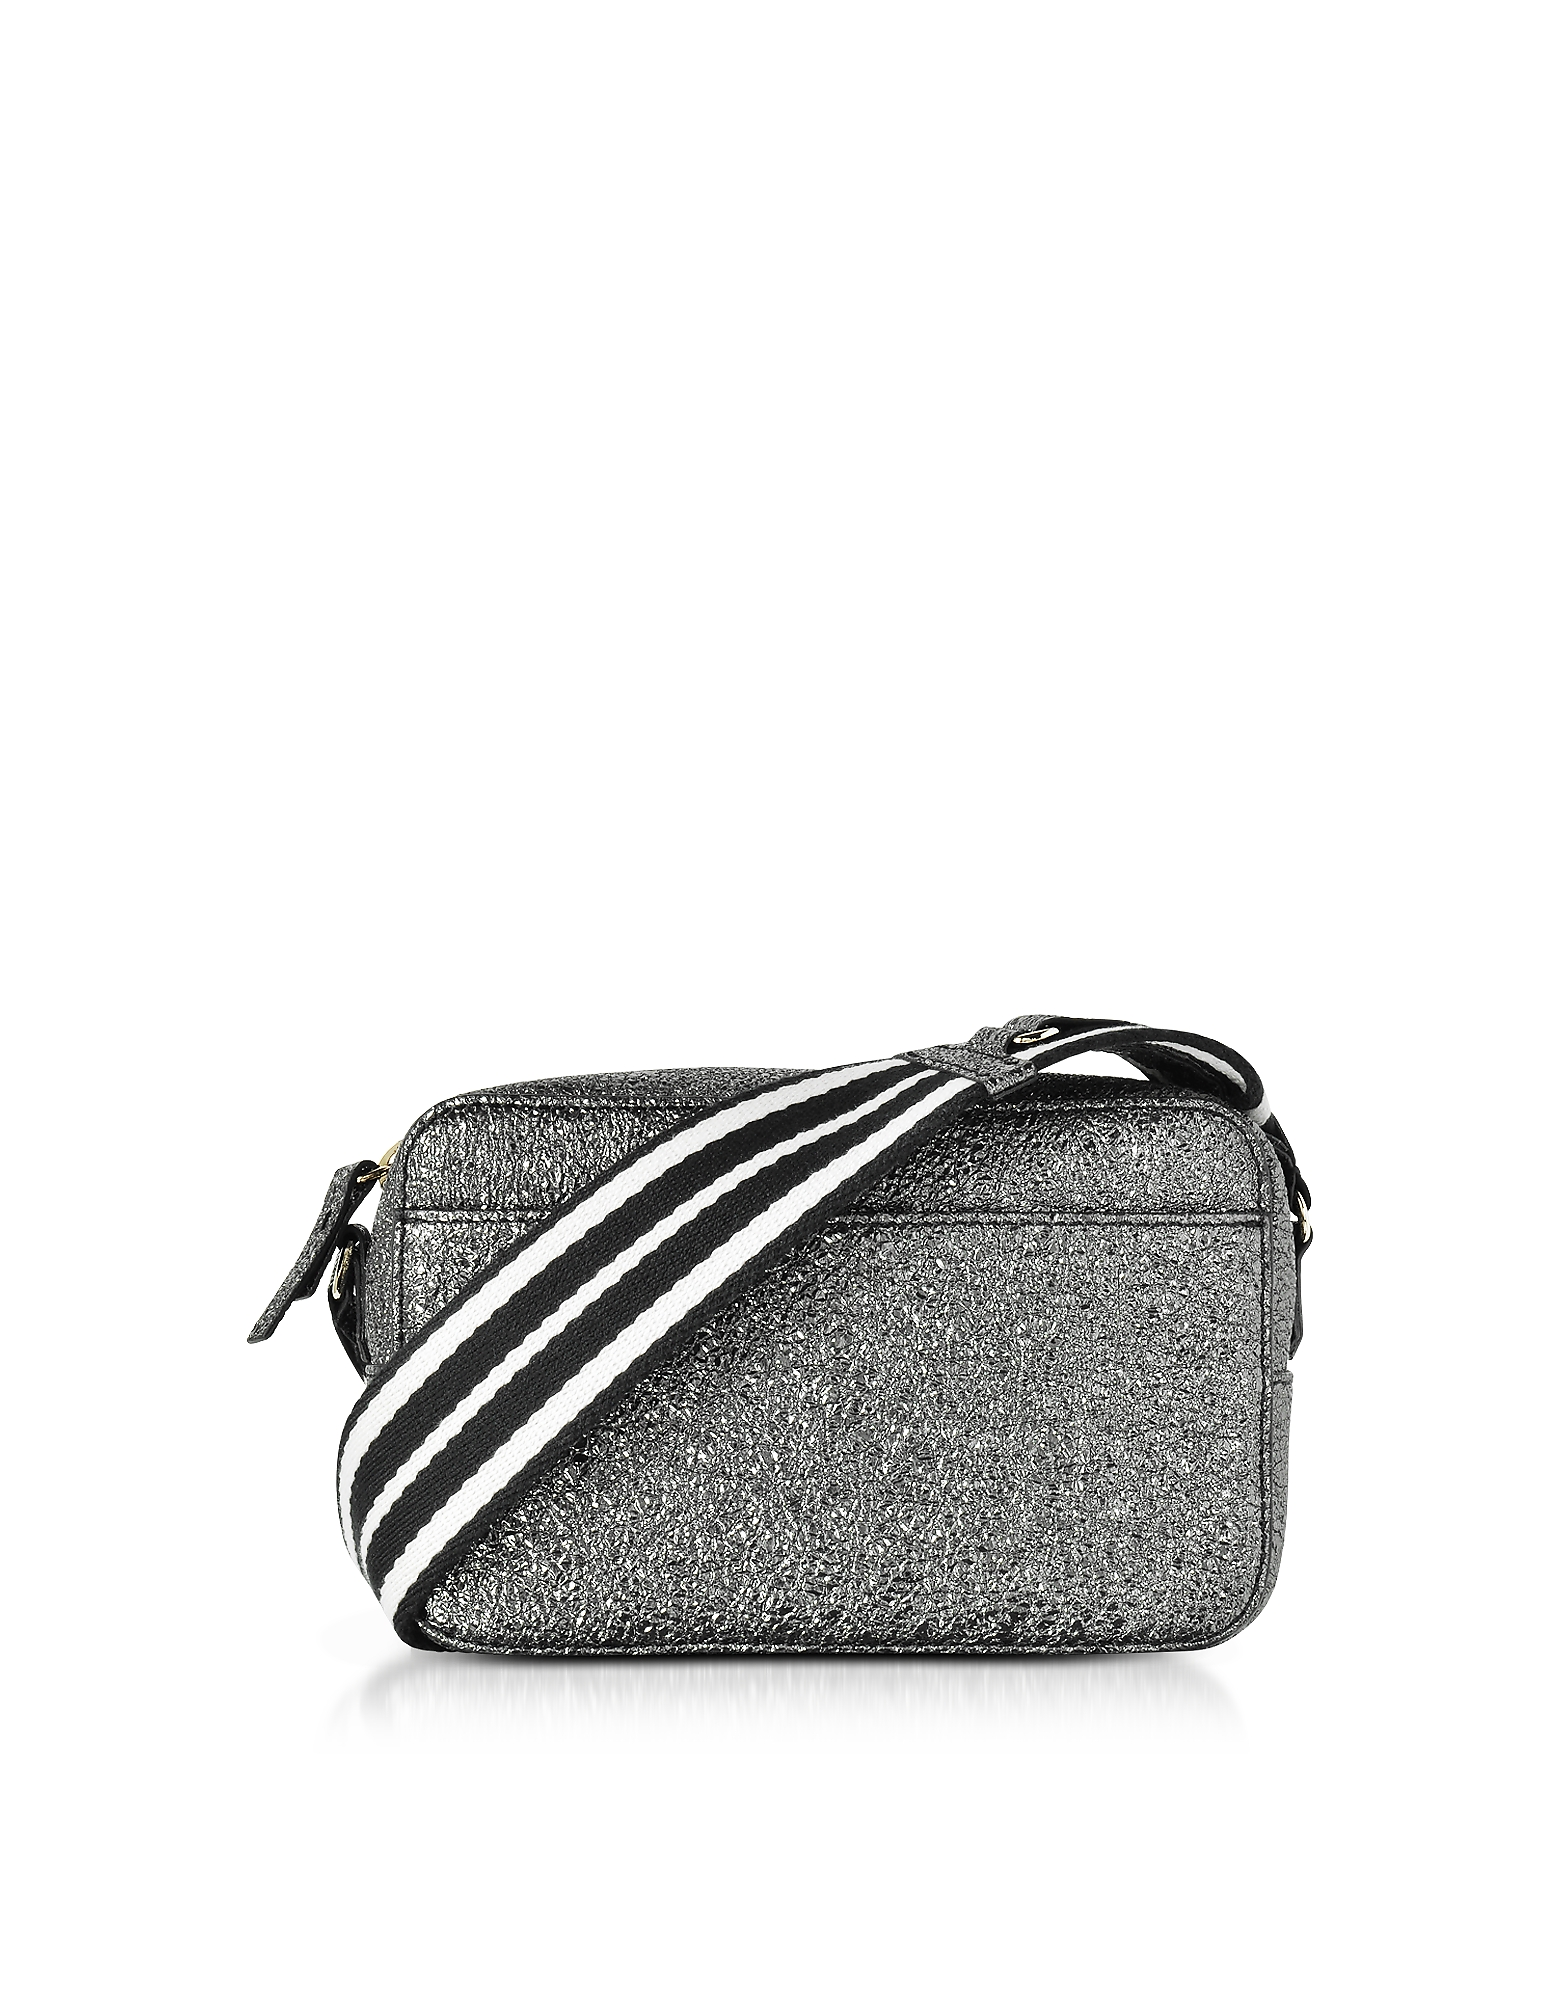 Image of RED Valentino Designer Handbags, Gunmetal Crackled Metallic Leather Crossbody Bag w/Striped Canvas Strap